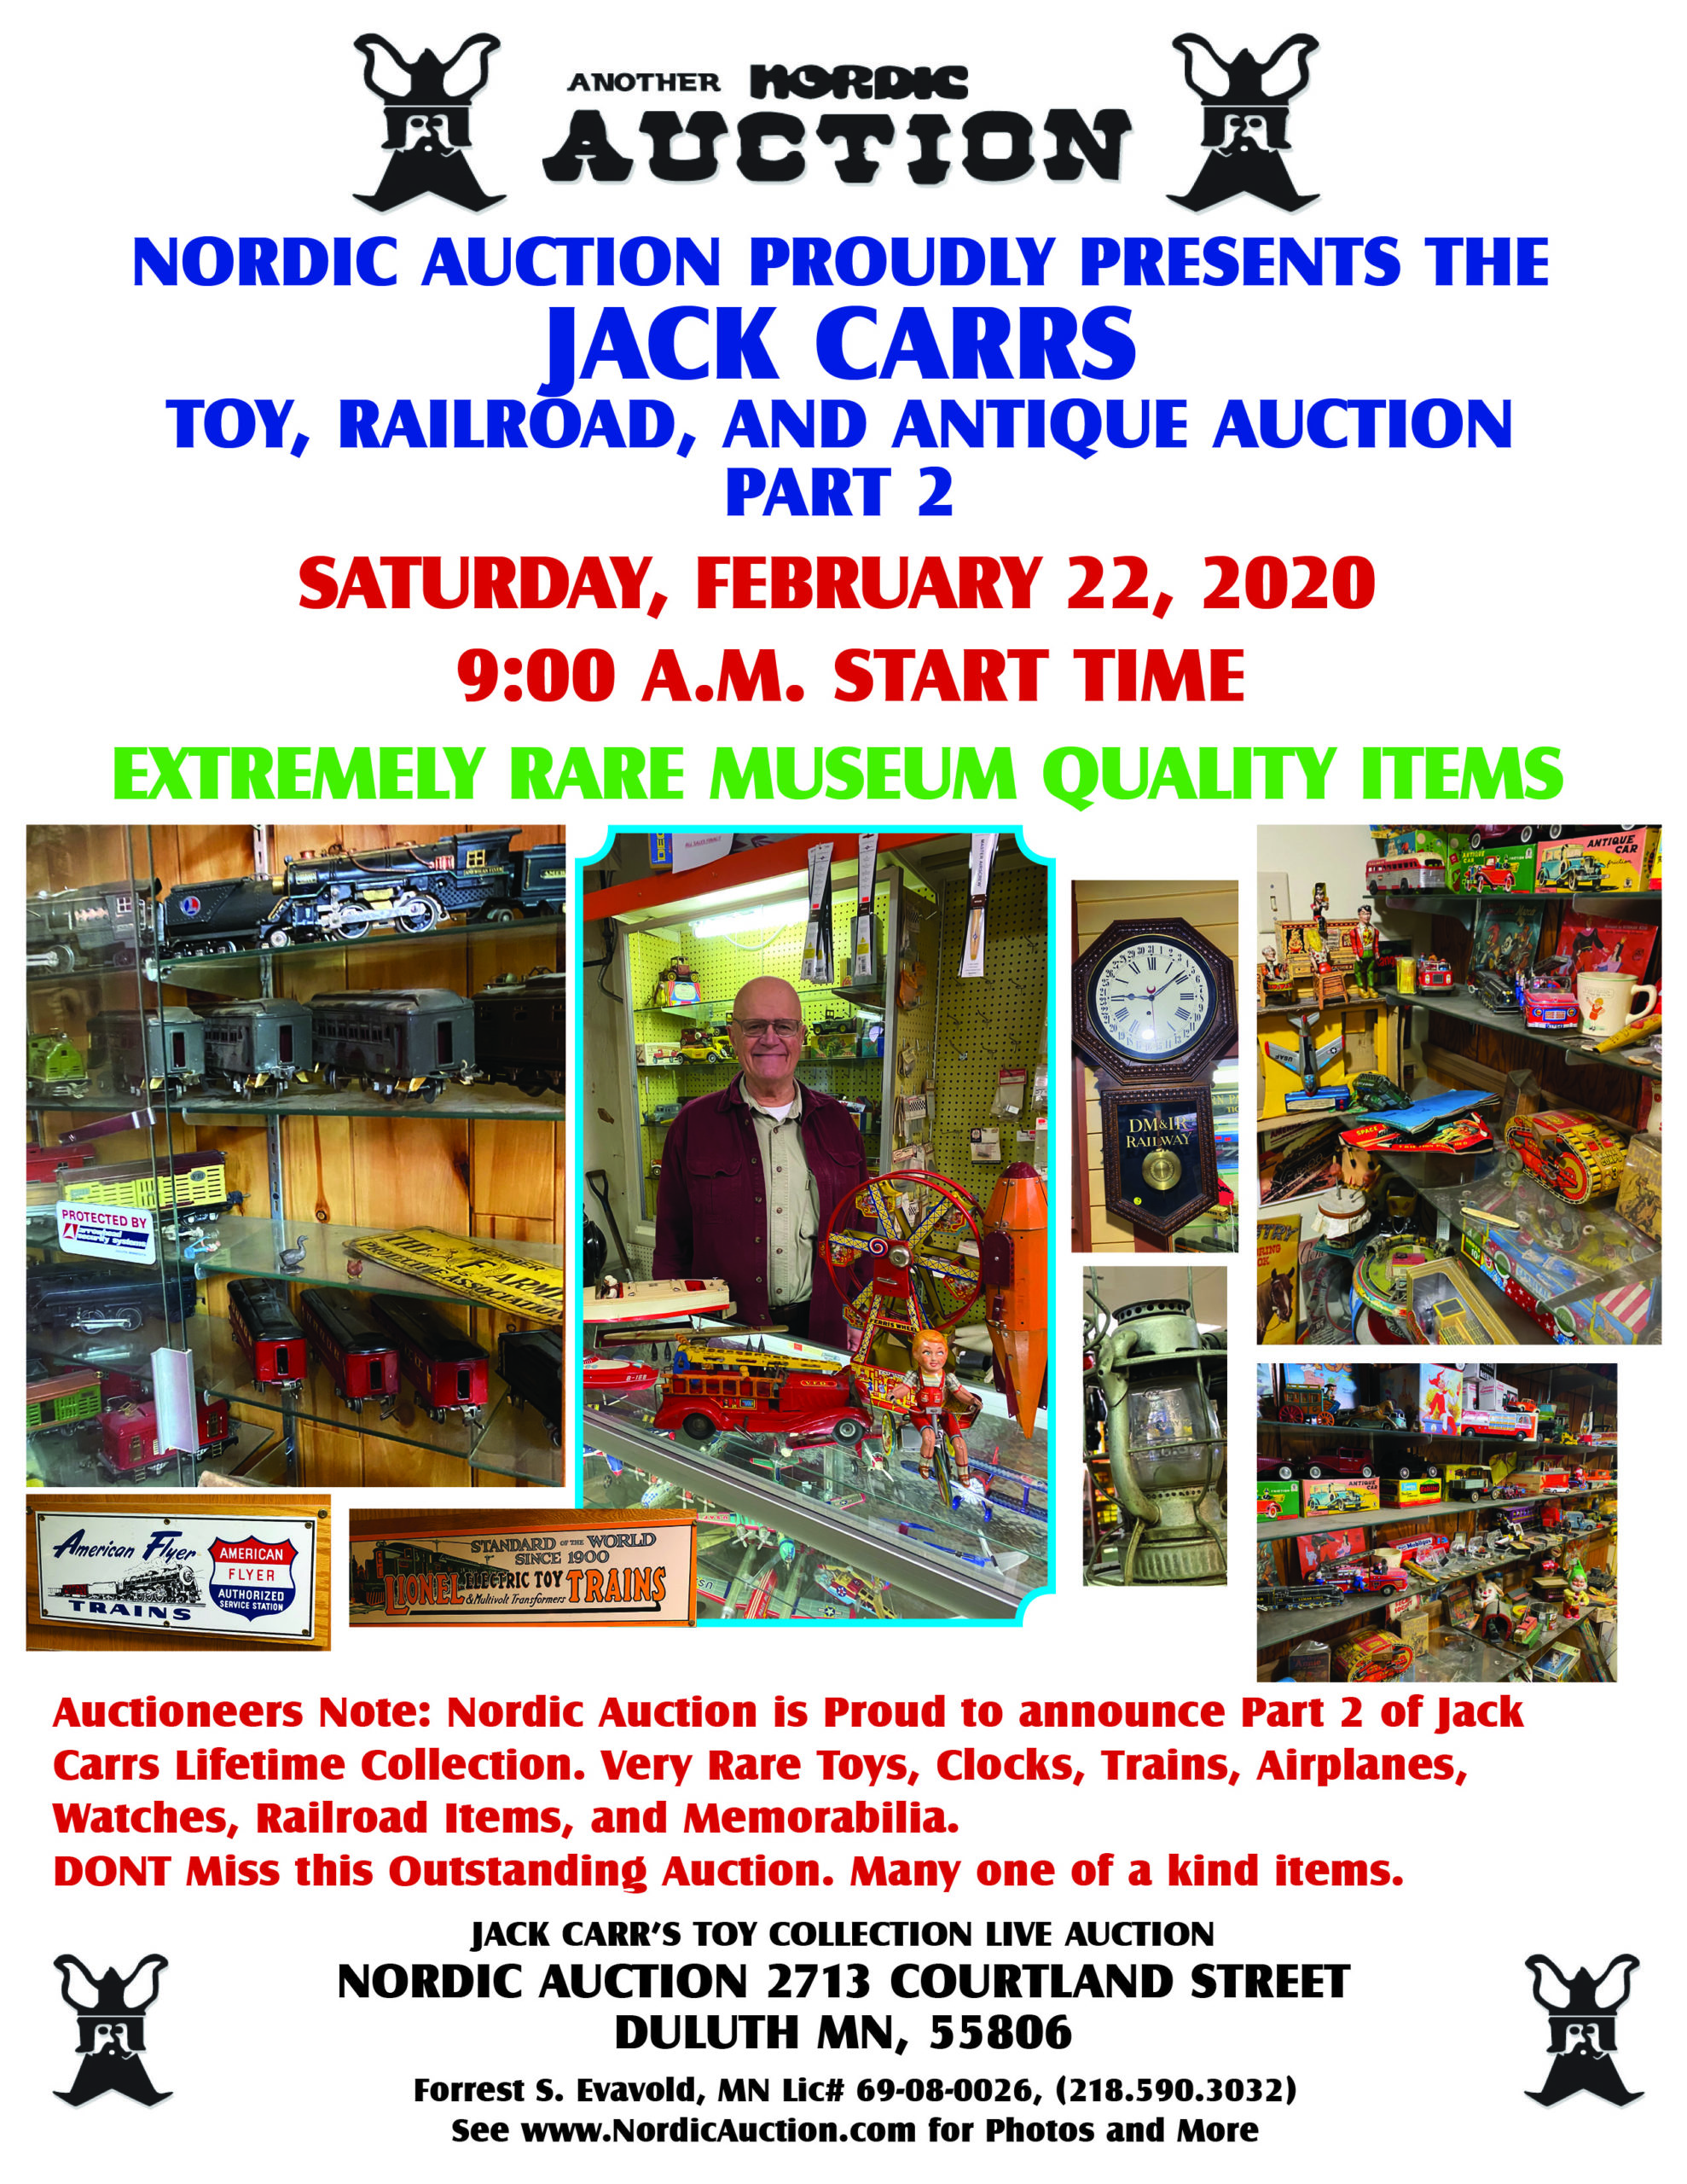 Mr. Jack Carr's Collection - Part II (MOVED TO MARCH 28)